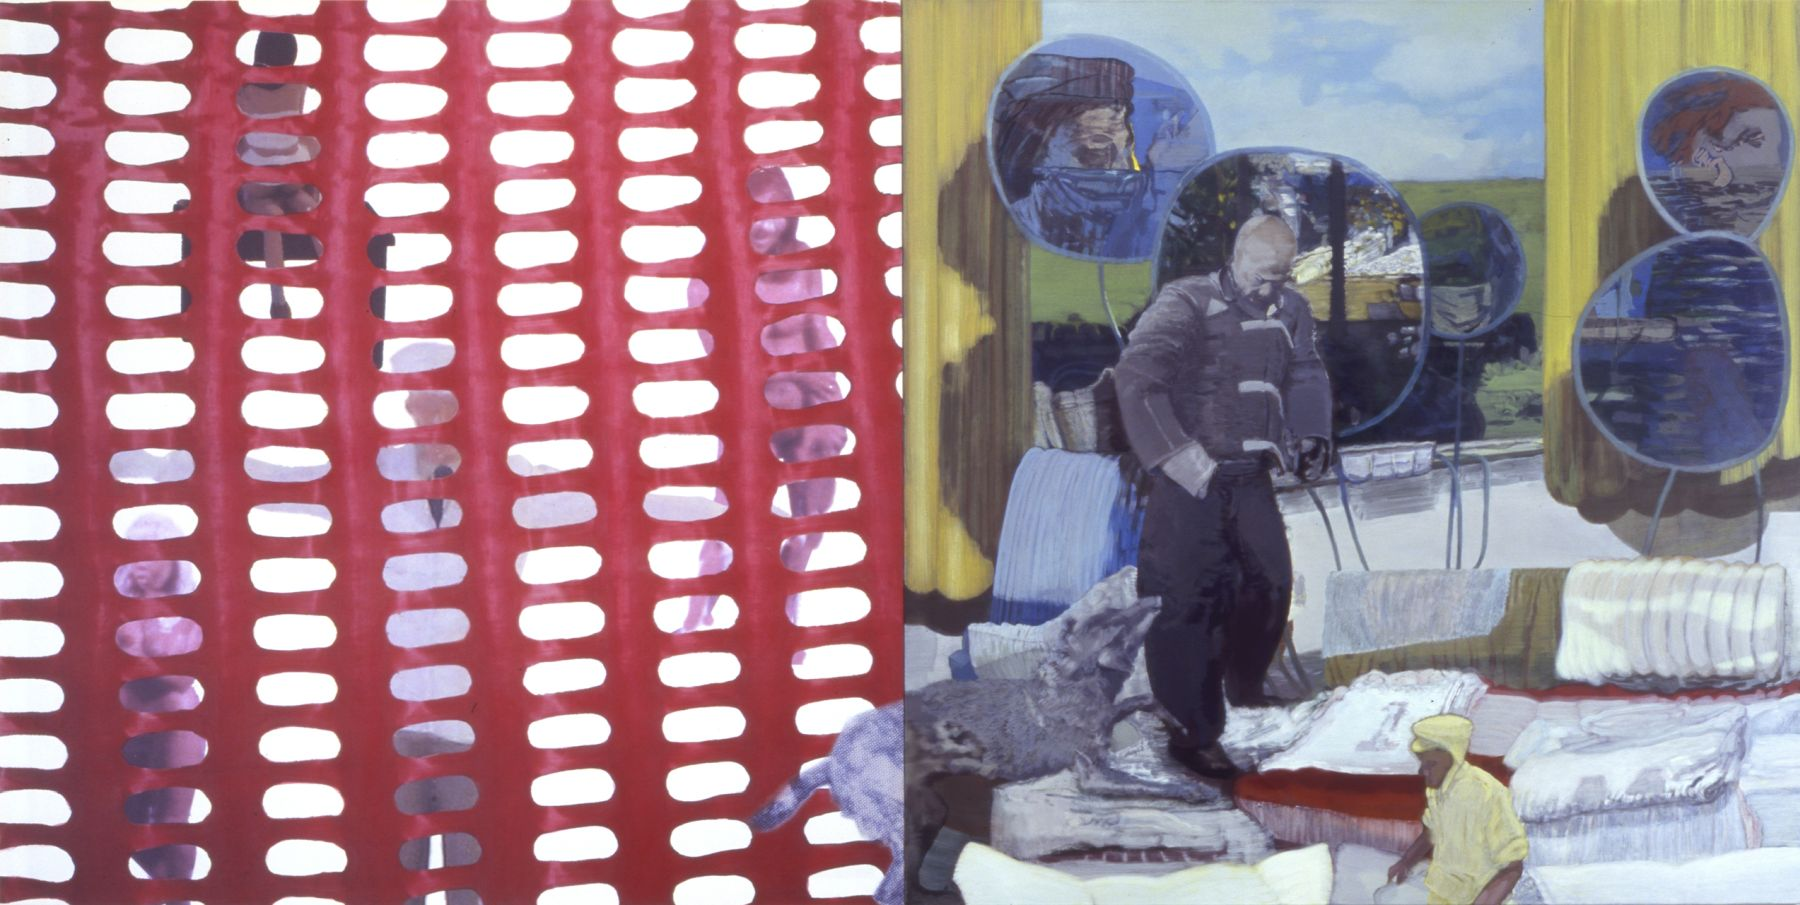 31. Research, 2006, acrylic/oil/print/canvas, 200 x 400 cm